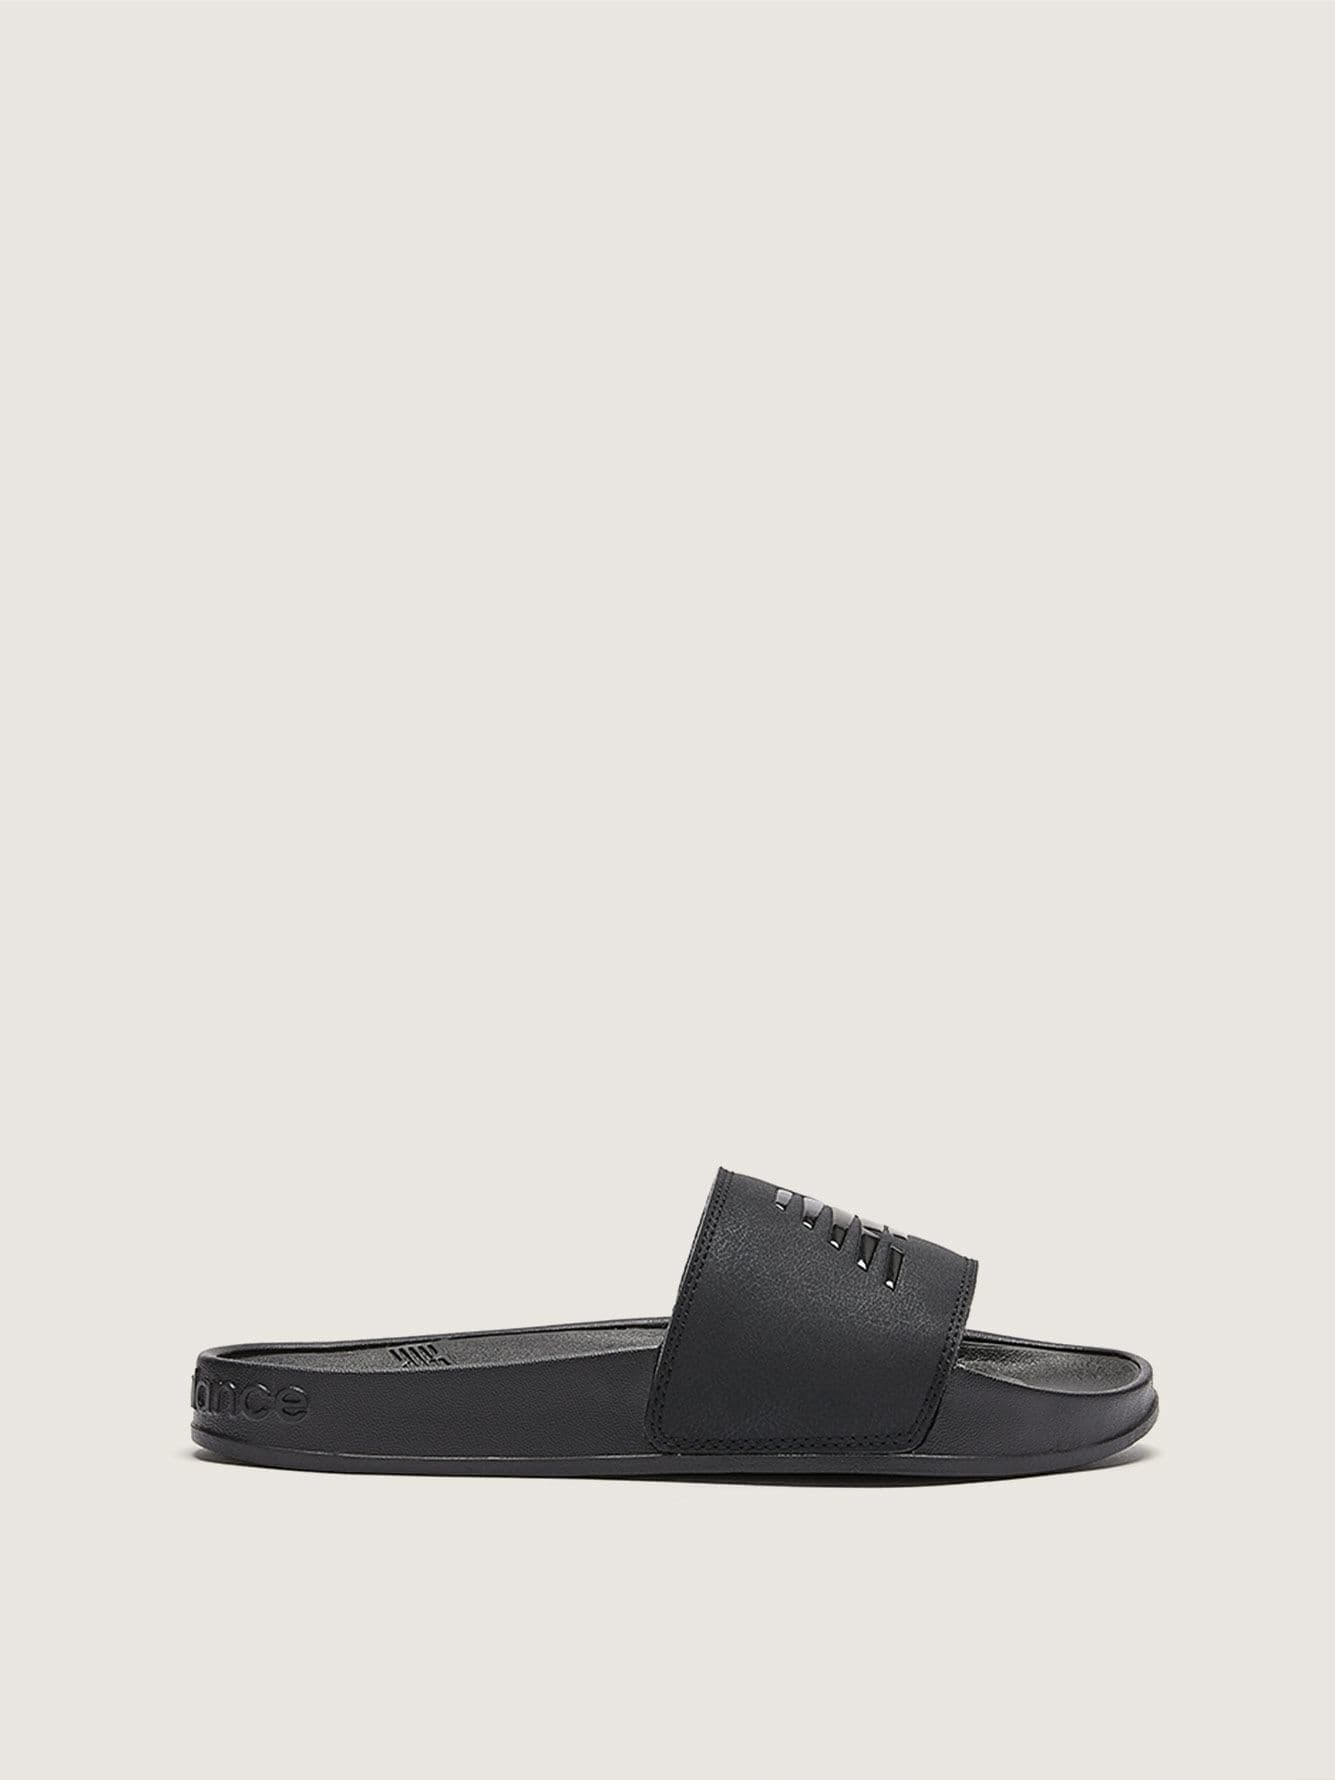 New Balance - Wide Flat Pool Slide-In Sandals